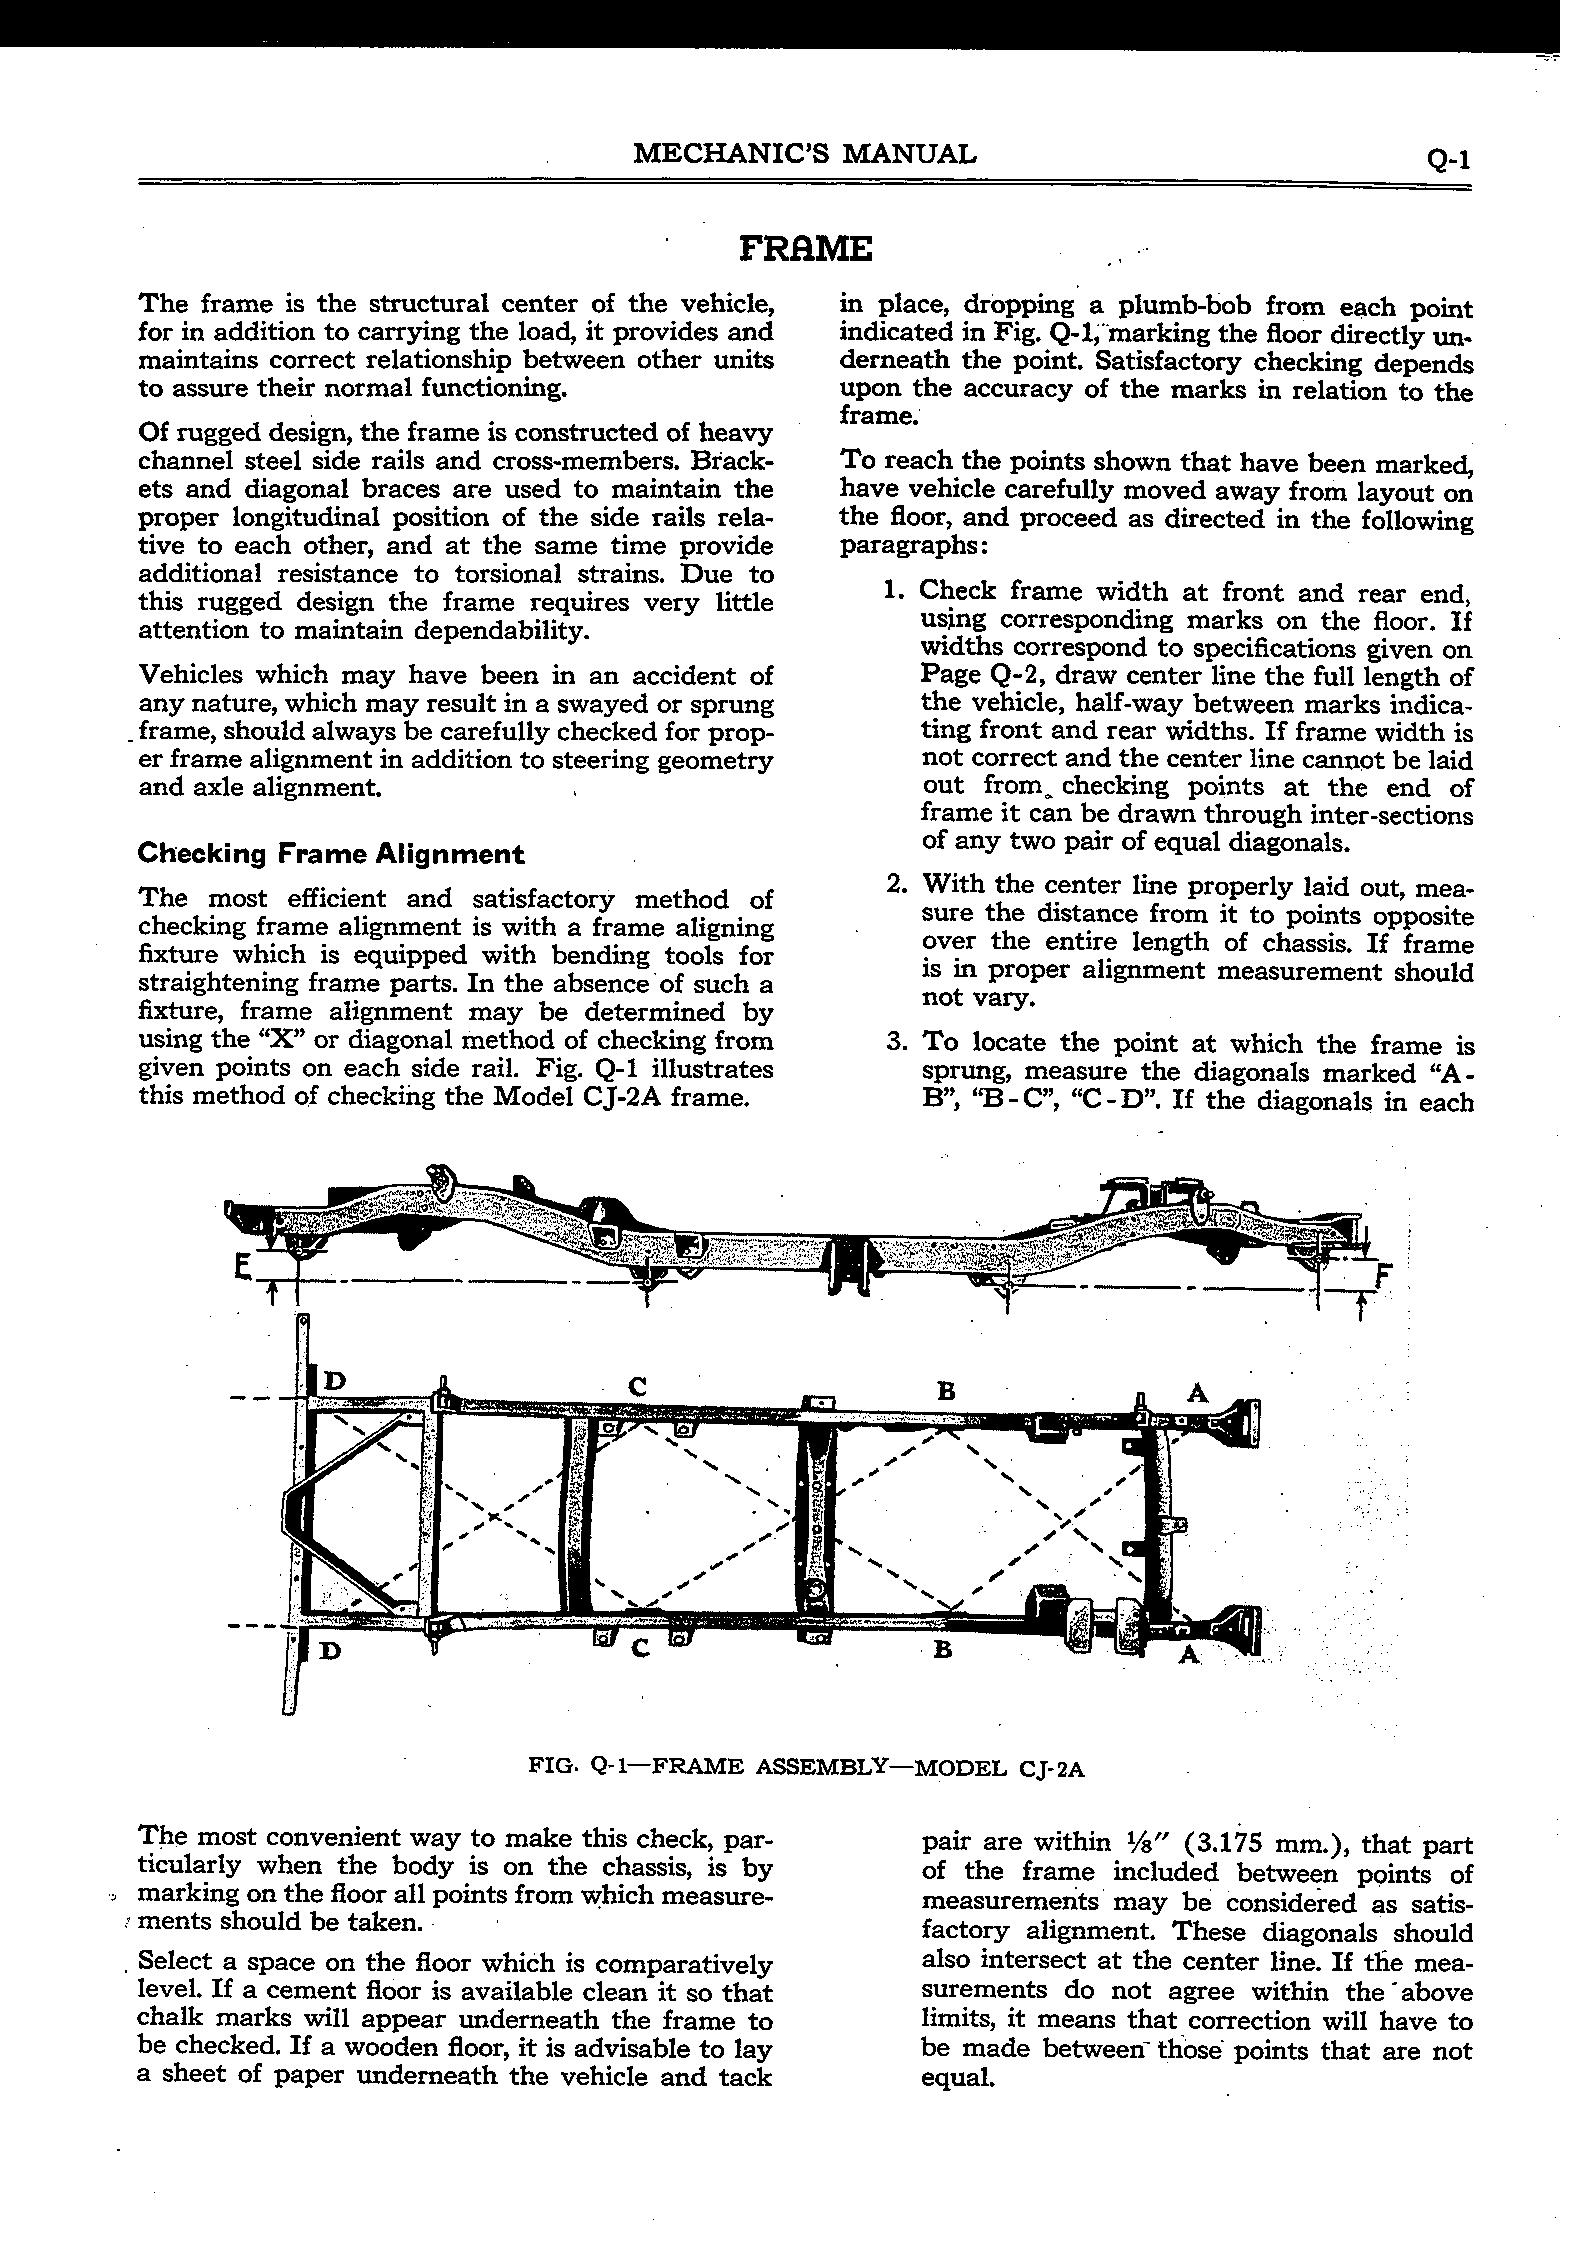 1948 mechanics manual click to enlarge